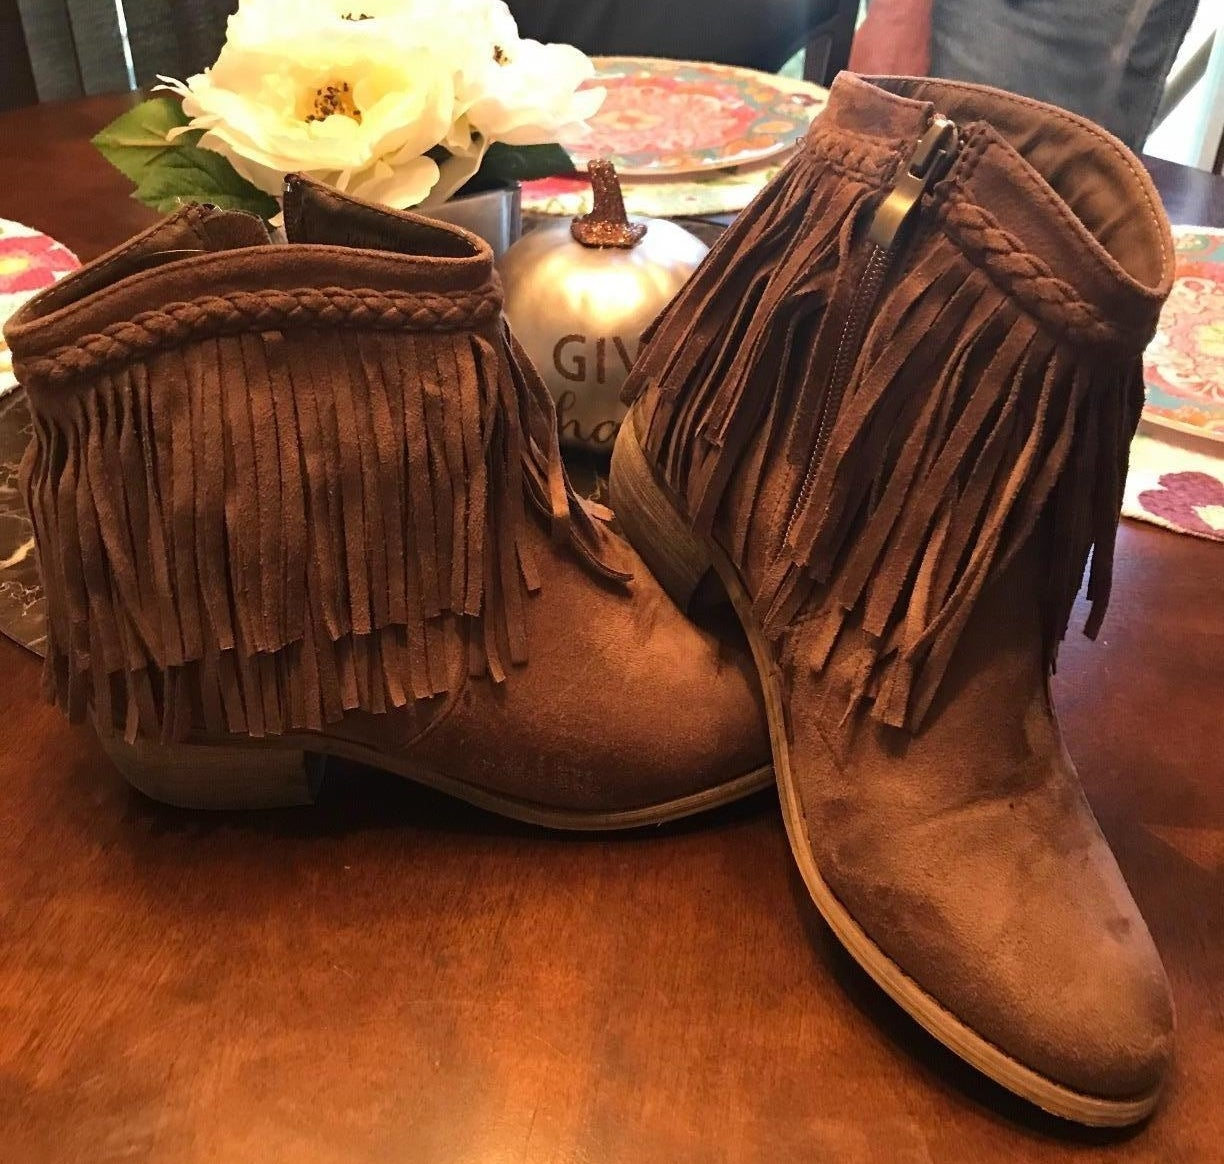 reviewer images of the booties with two layers of fringe around the ankle in brown